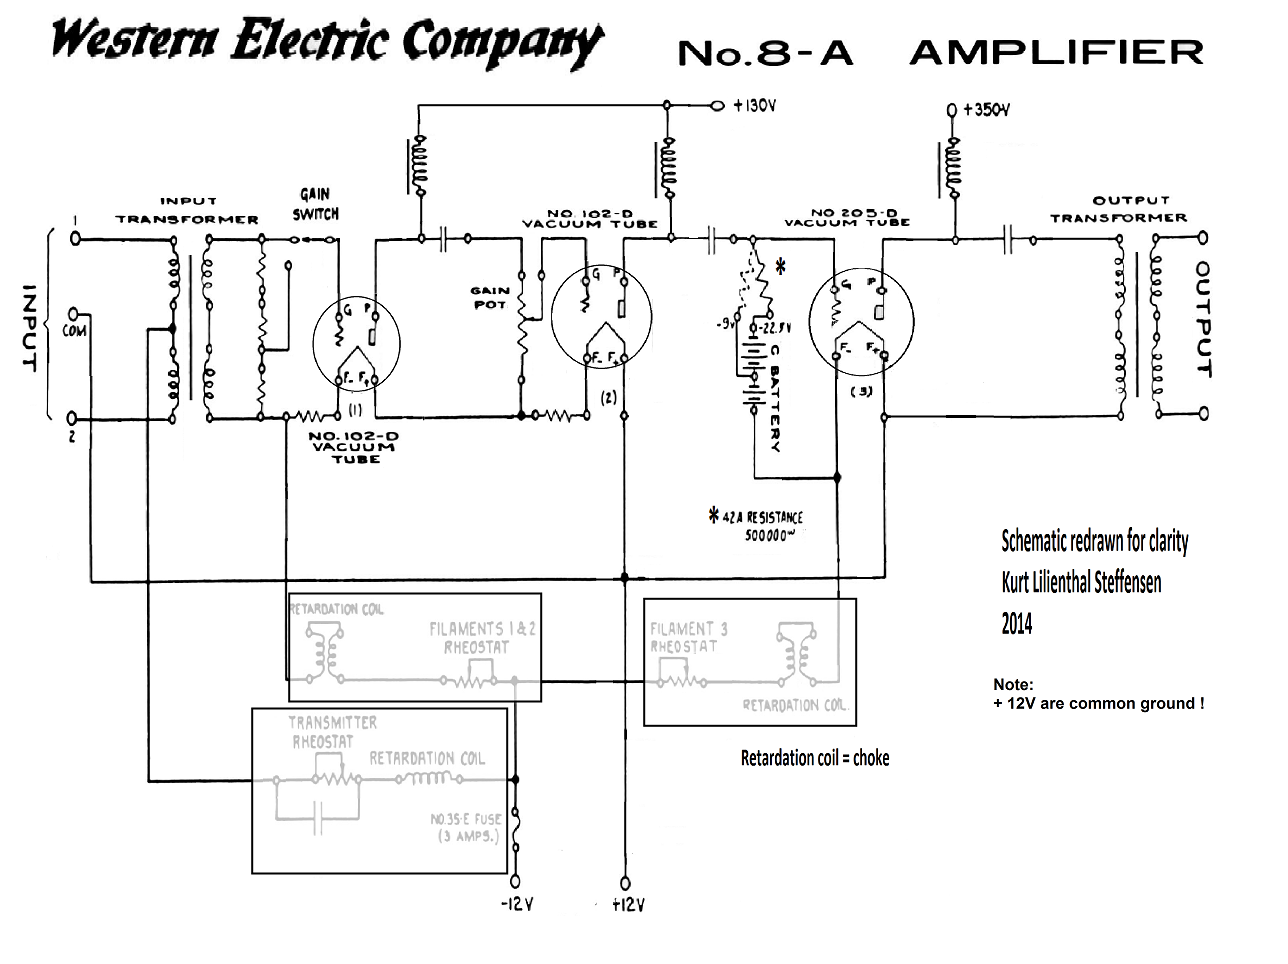 100 Amplifiers Part 1 1916 45 Lilienthal Engineering Audio Power Amplifier Schematics 4w 8 Watt Amp Western Electric 8a Edited